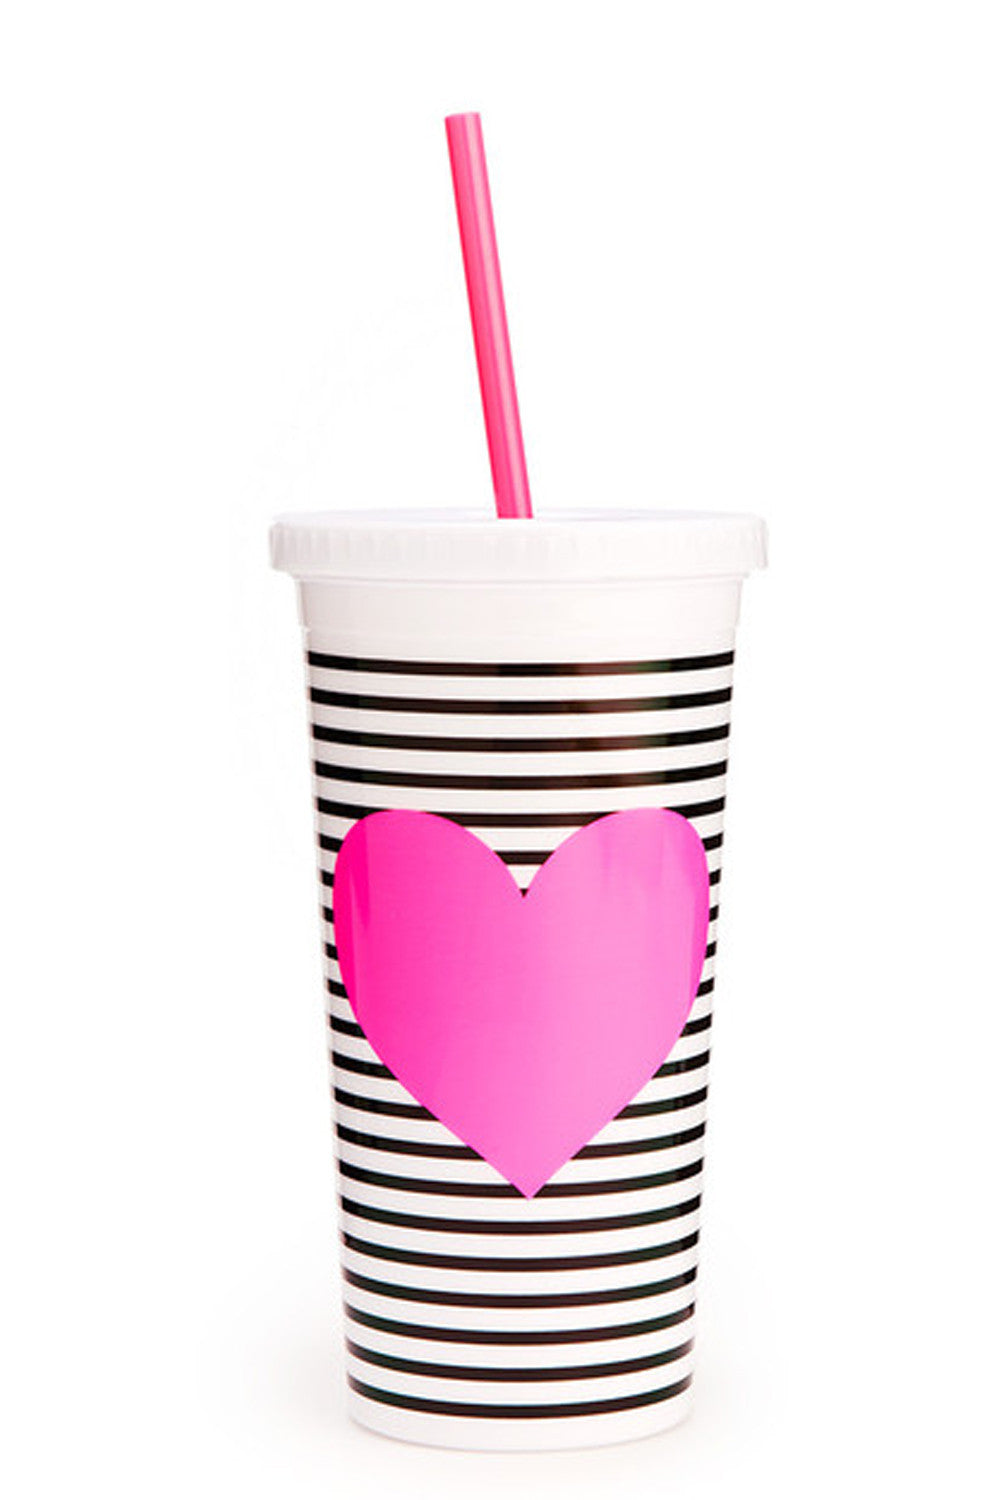 Sip Sip Tumblr with Straw- Neon Heart